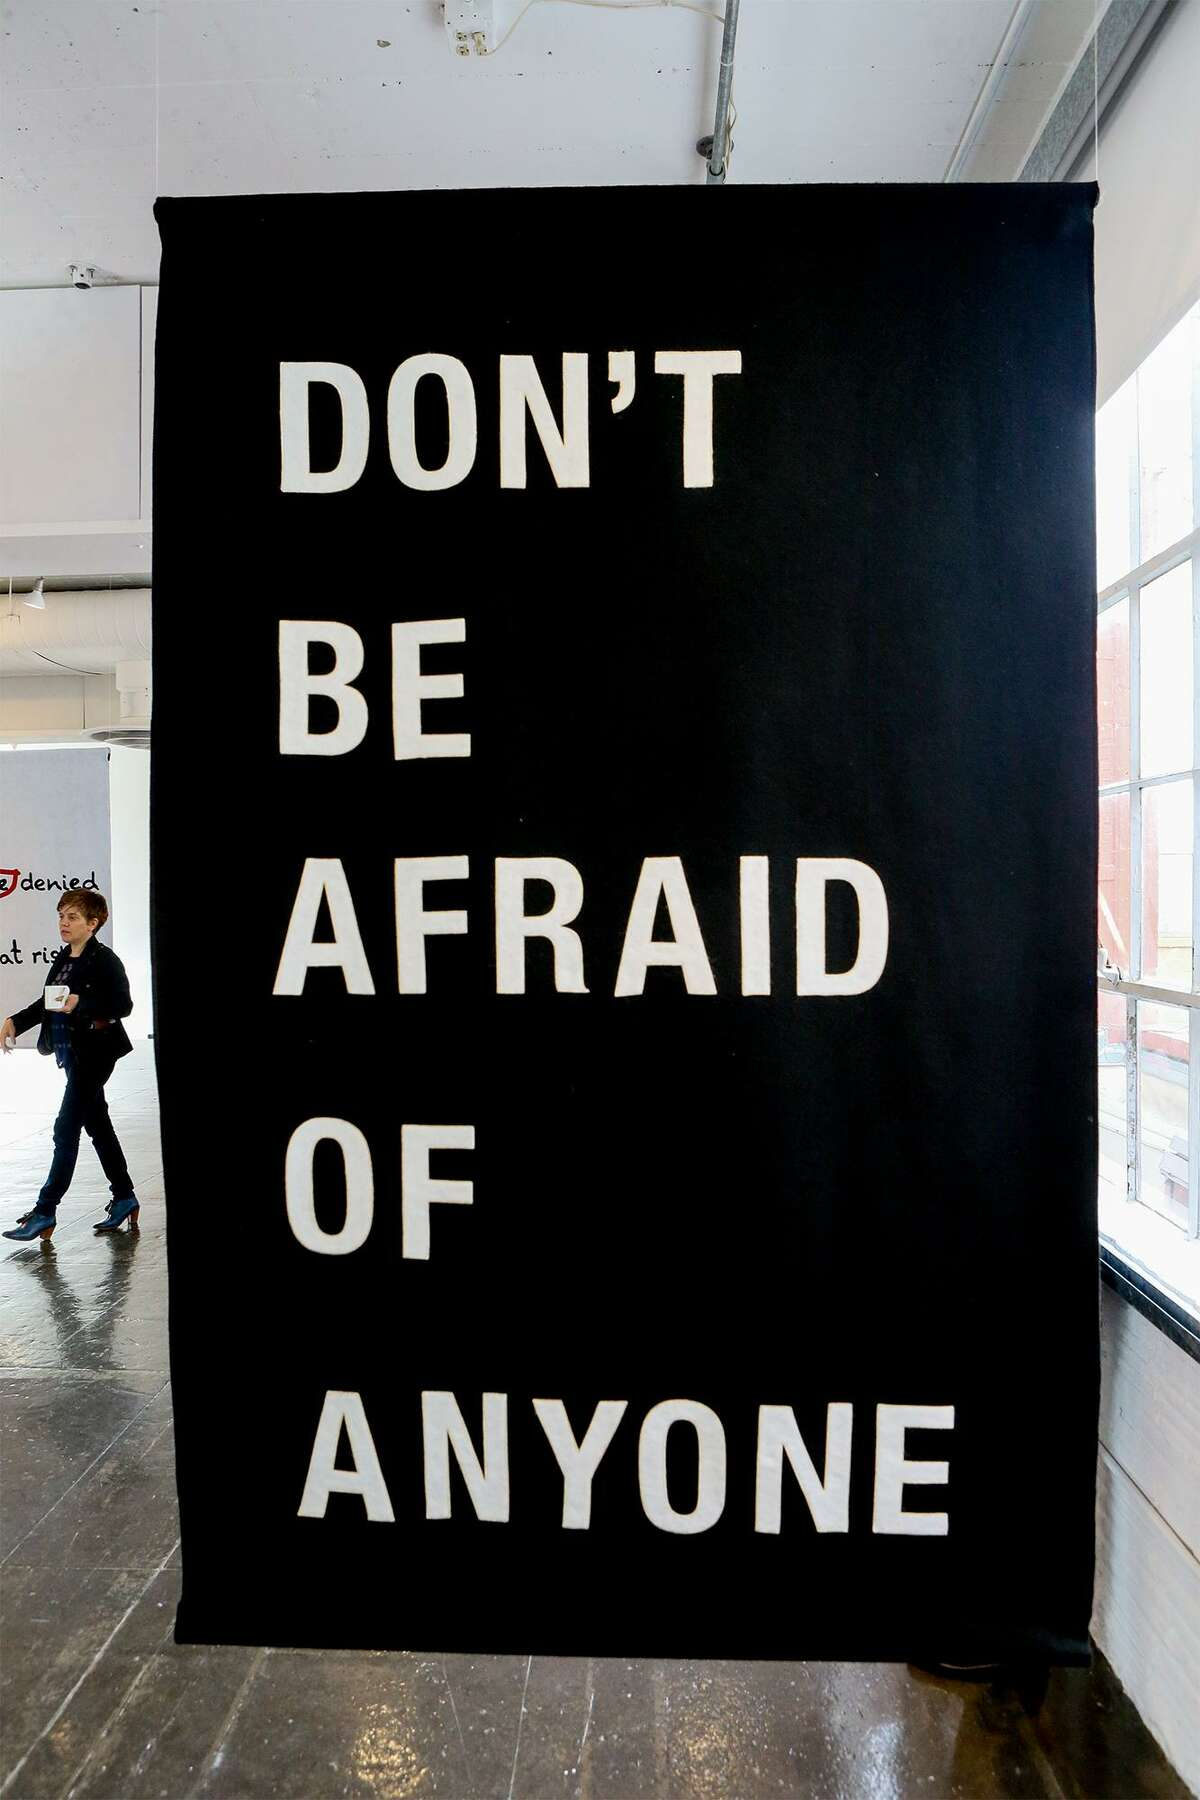 """Multi-disciplinary artist Laurie Anderson collaborated with writer A.M. Homes on this banner, which is featured in """"Word on the Street."""" The exhibit is on display at Artpace, marking its first showing outside of New York."""